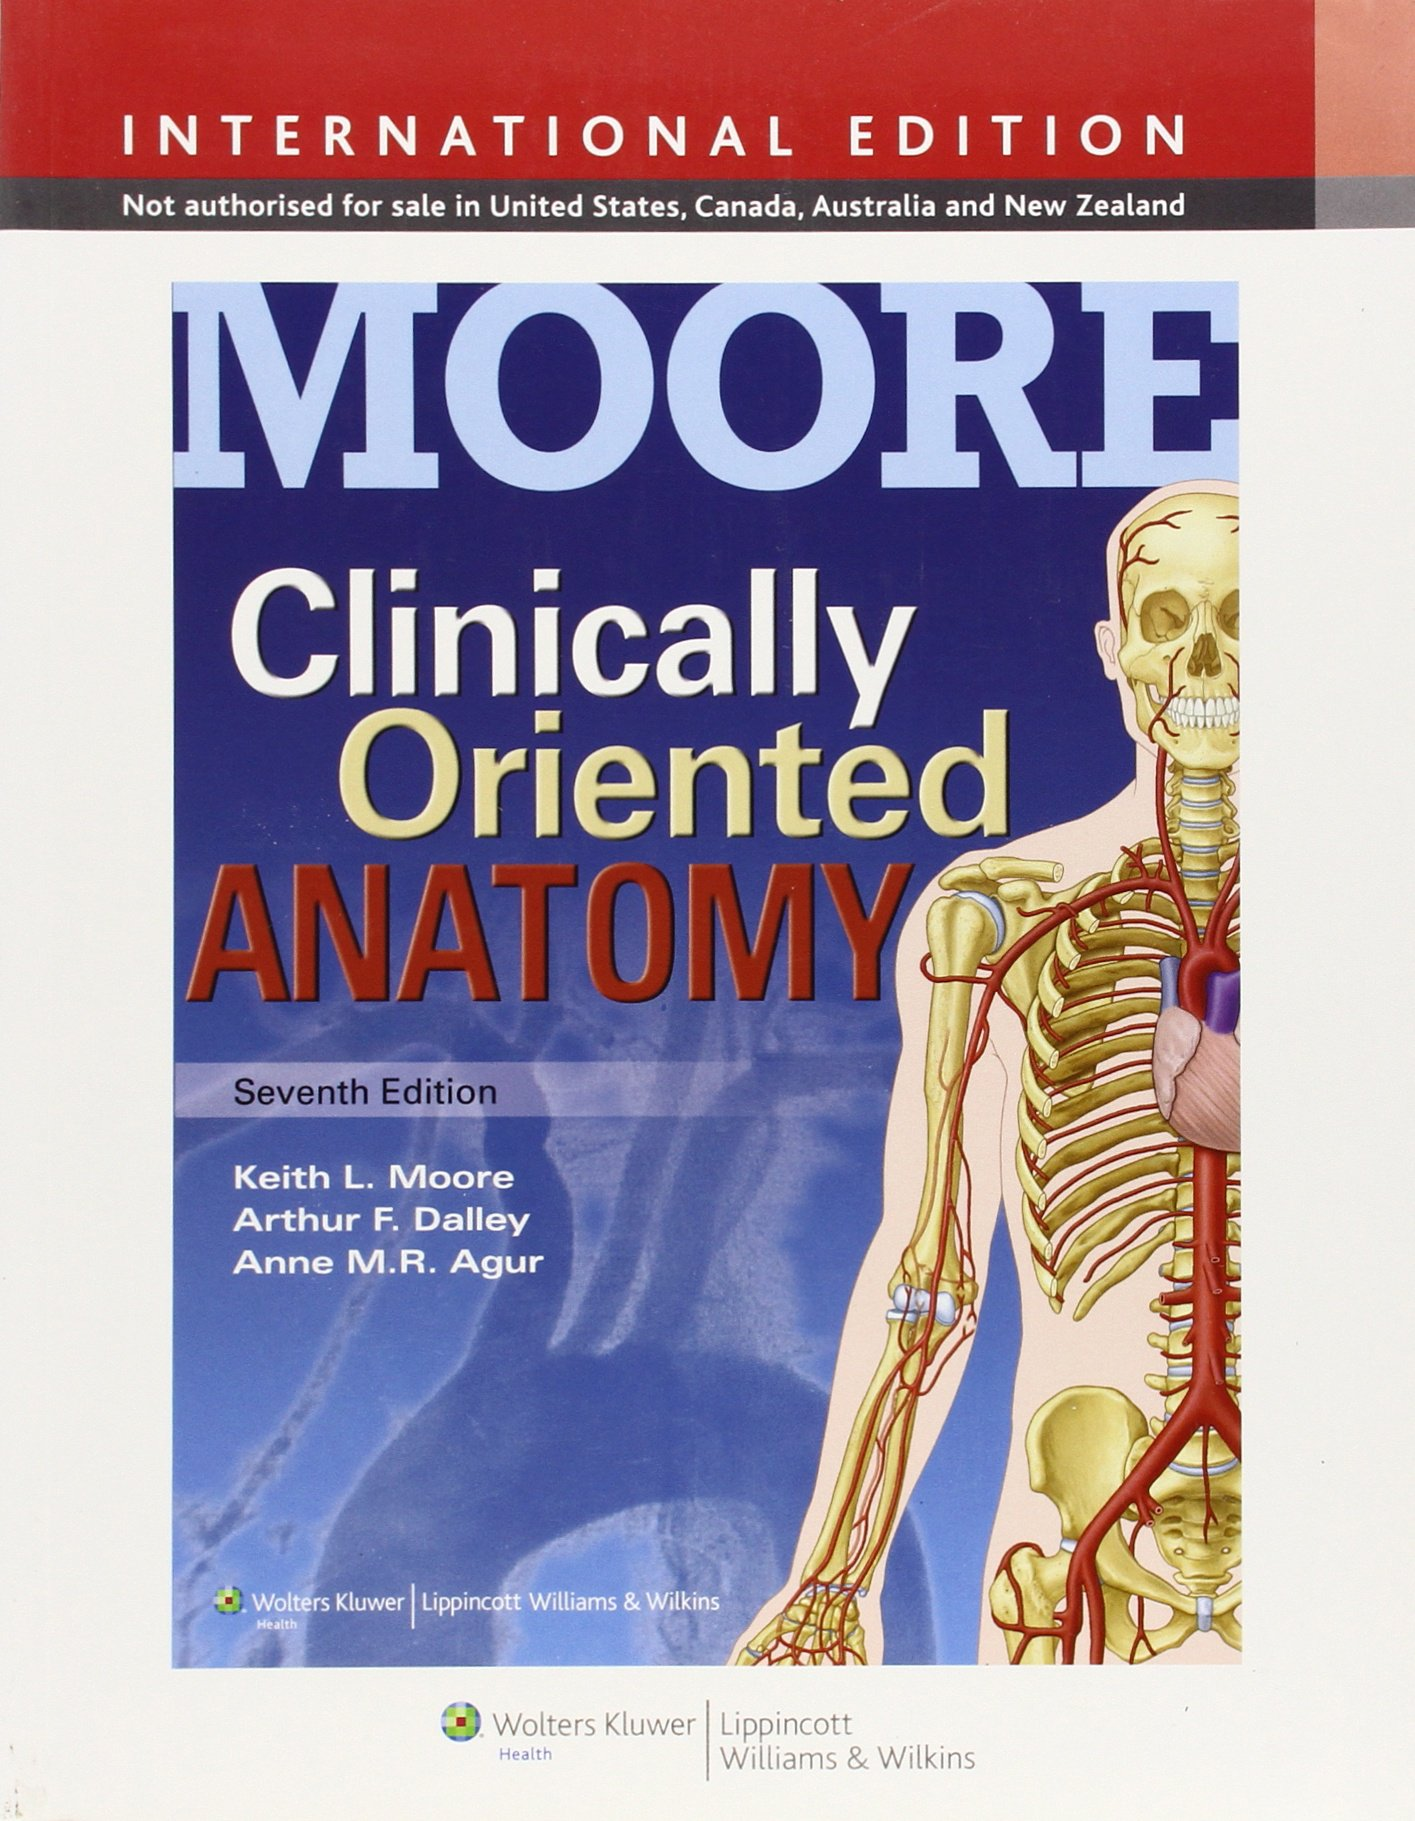 Clinically Oriented Anatomy: Amazon.co.uk: Keith L. Moore, Anne ...